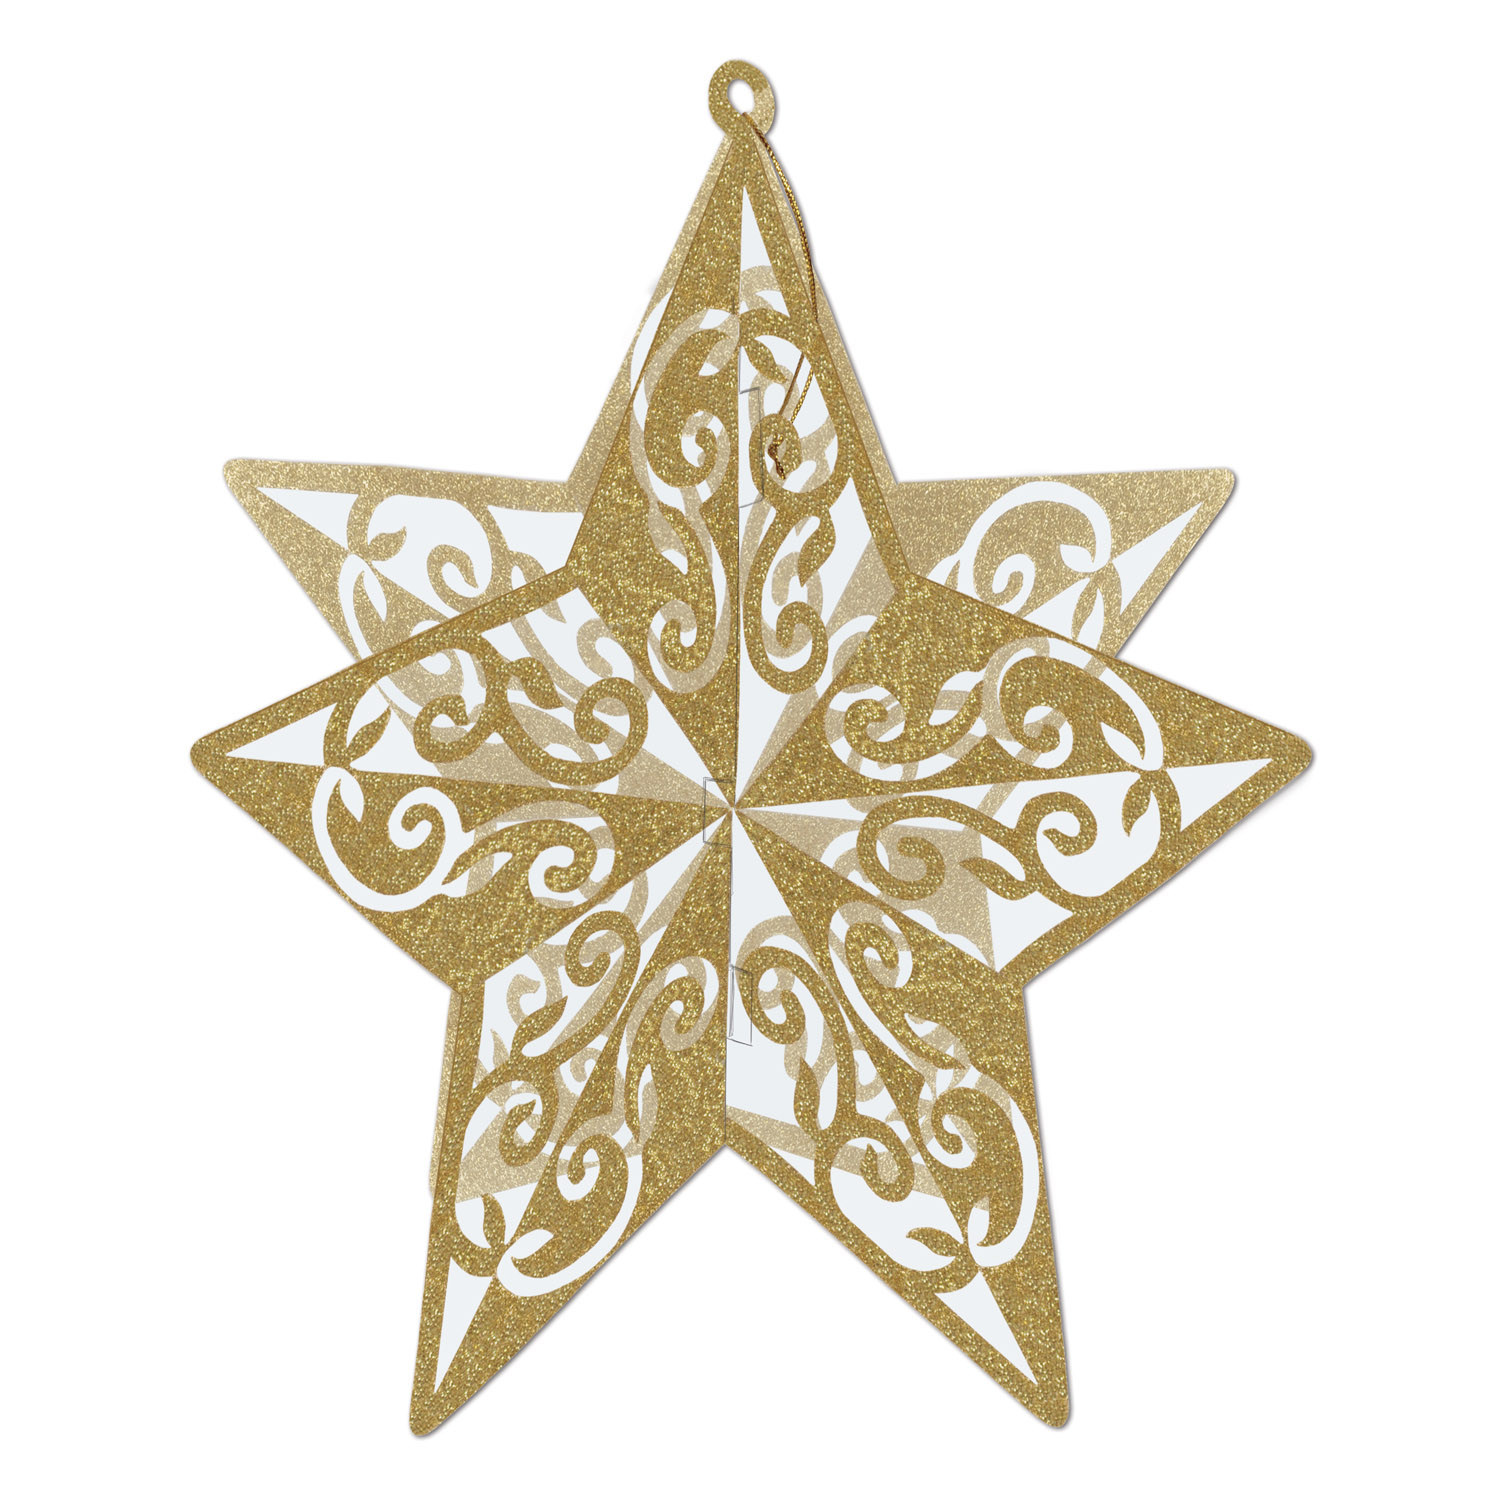 Gold glittered star cutout with accents and created to look 3-D.